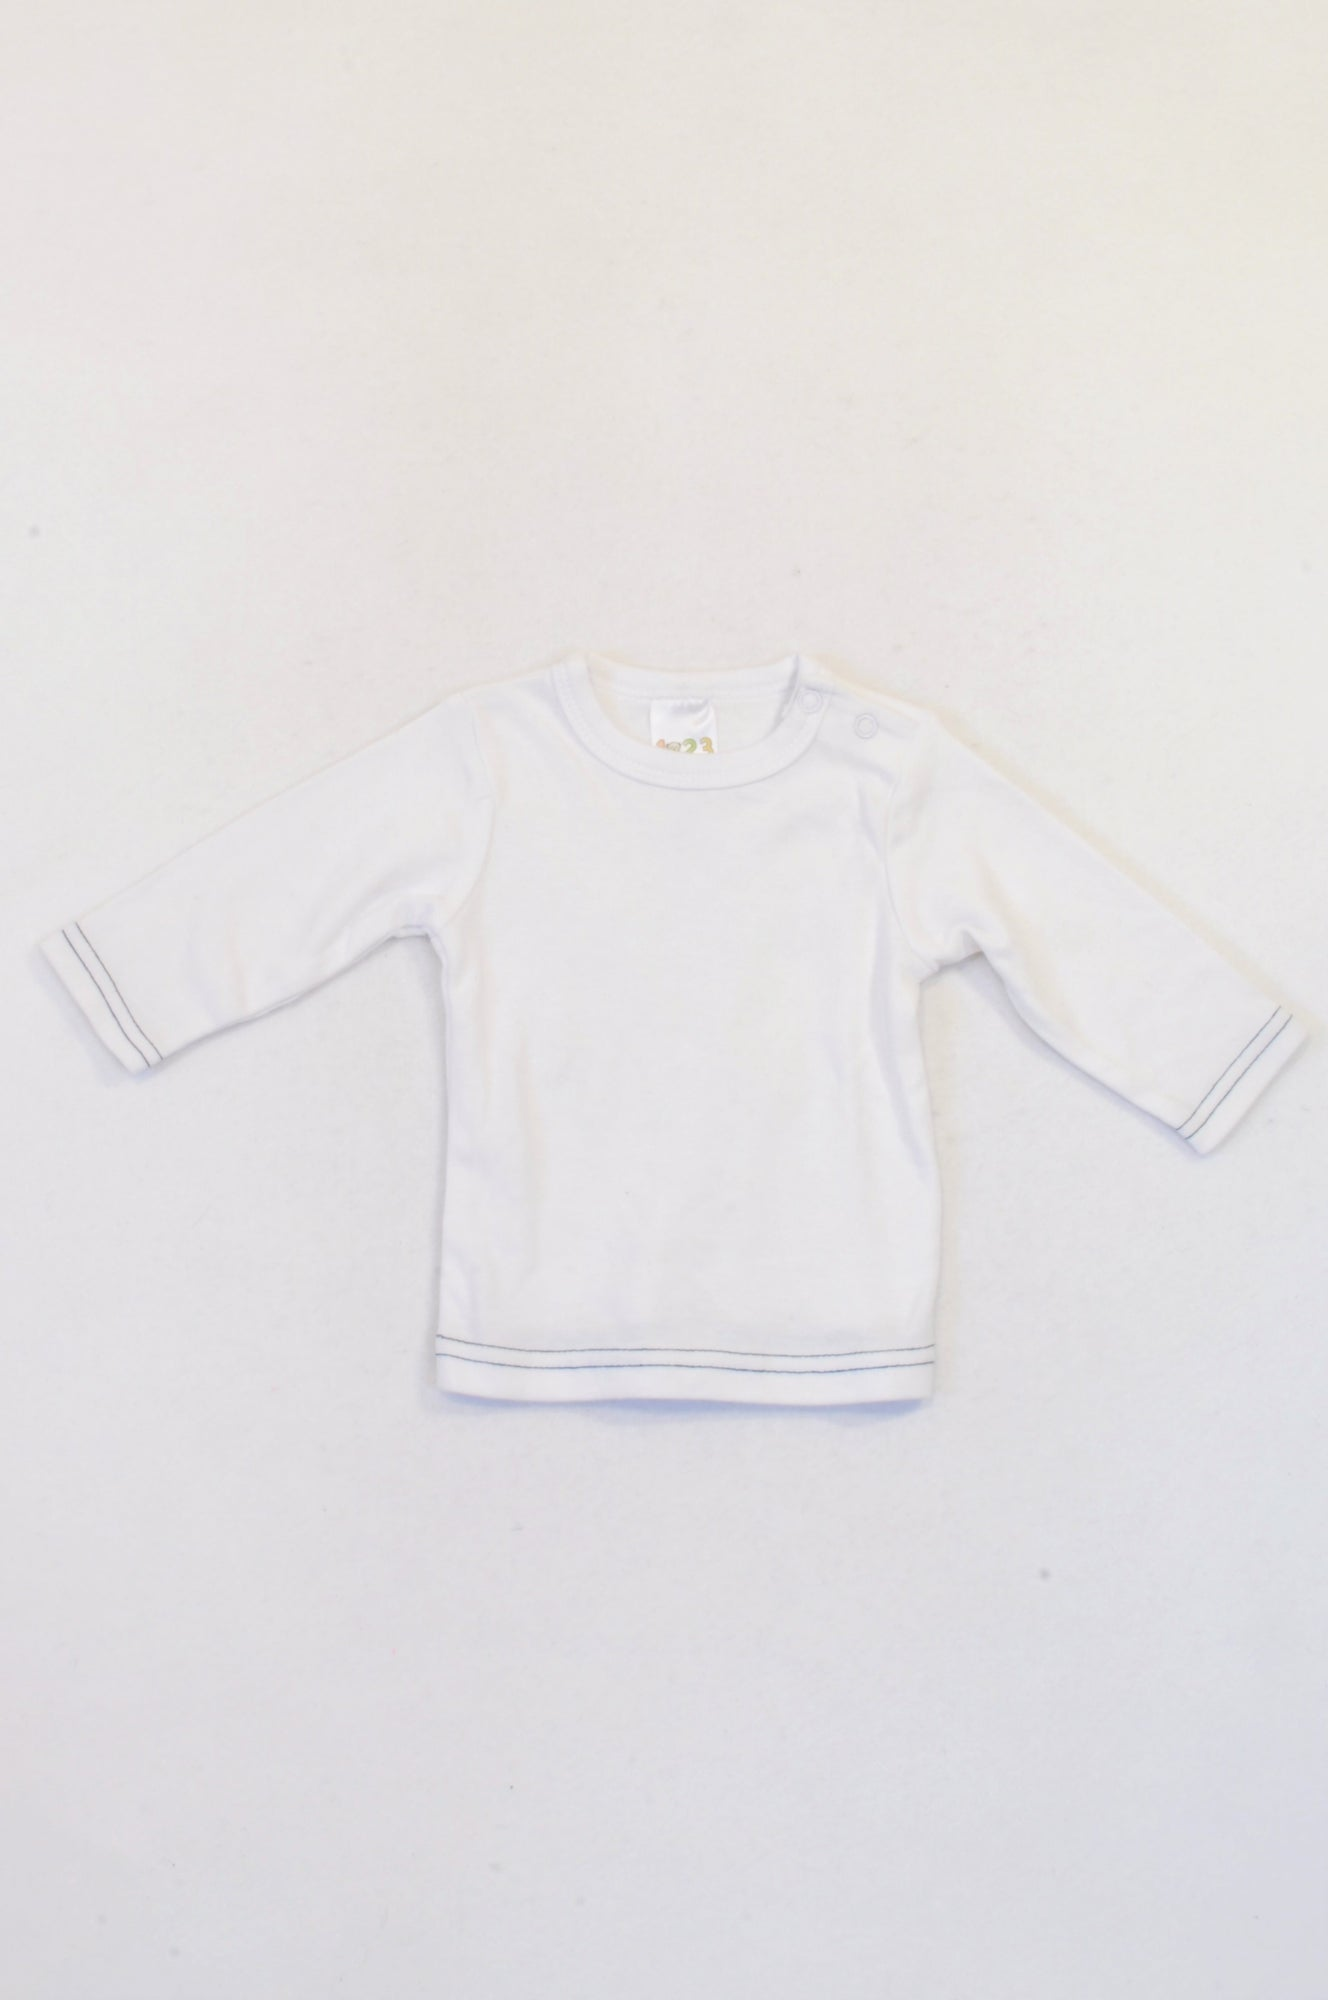 Edgars White Navy Trim Long Sleeved T-shirt Boys 0-3 months